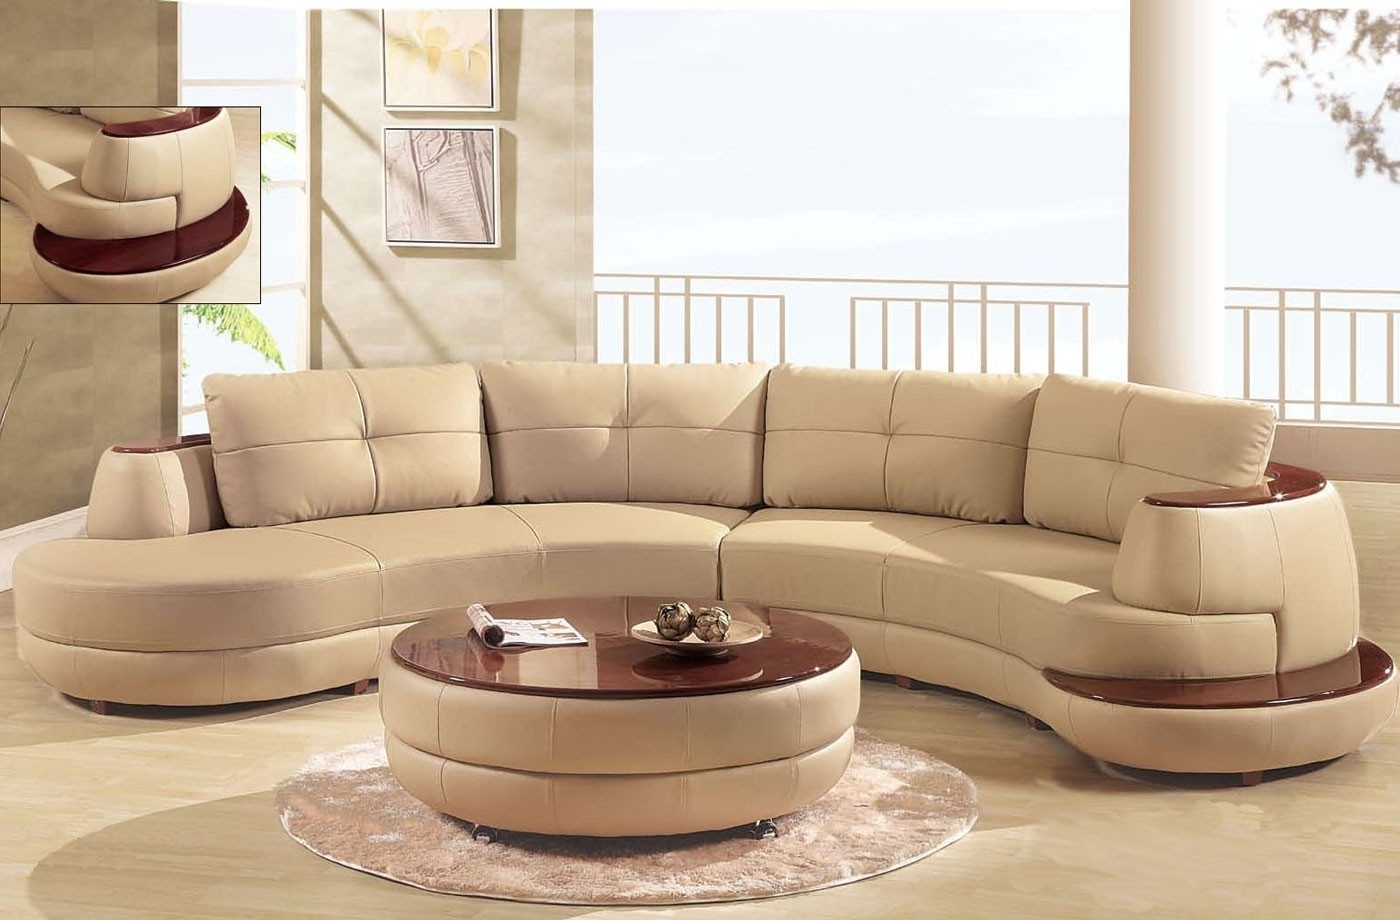 Trendy Homemakers Sectional Sofas With Regard To Charming Two Tones Modern Sectional Sofa Design In Brown And White (View 17 of 20)